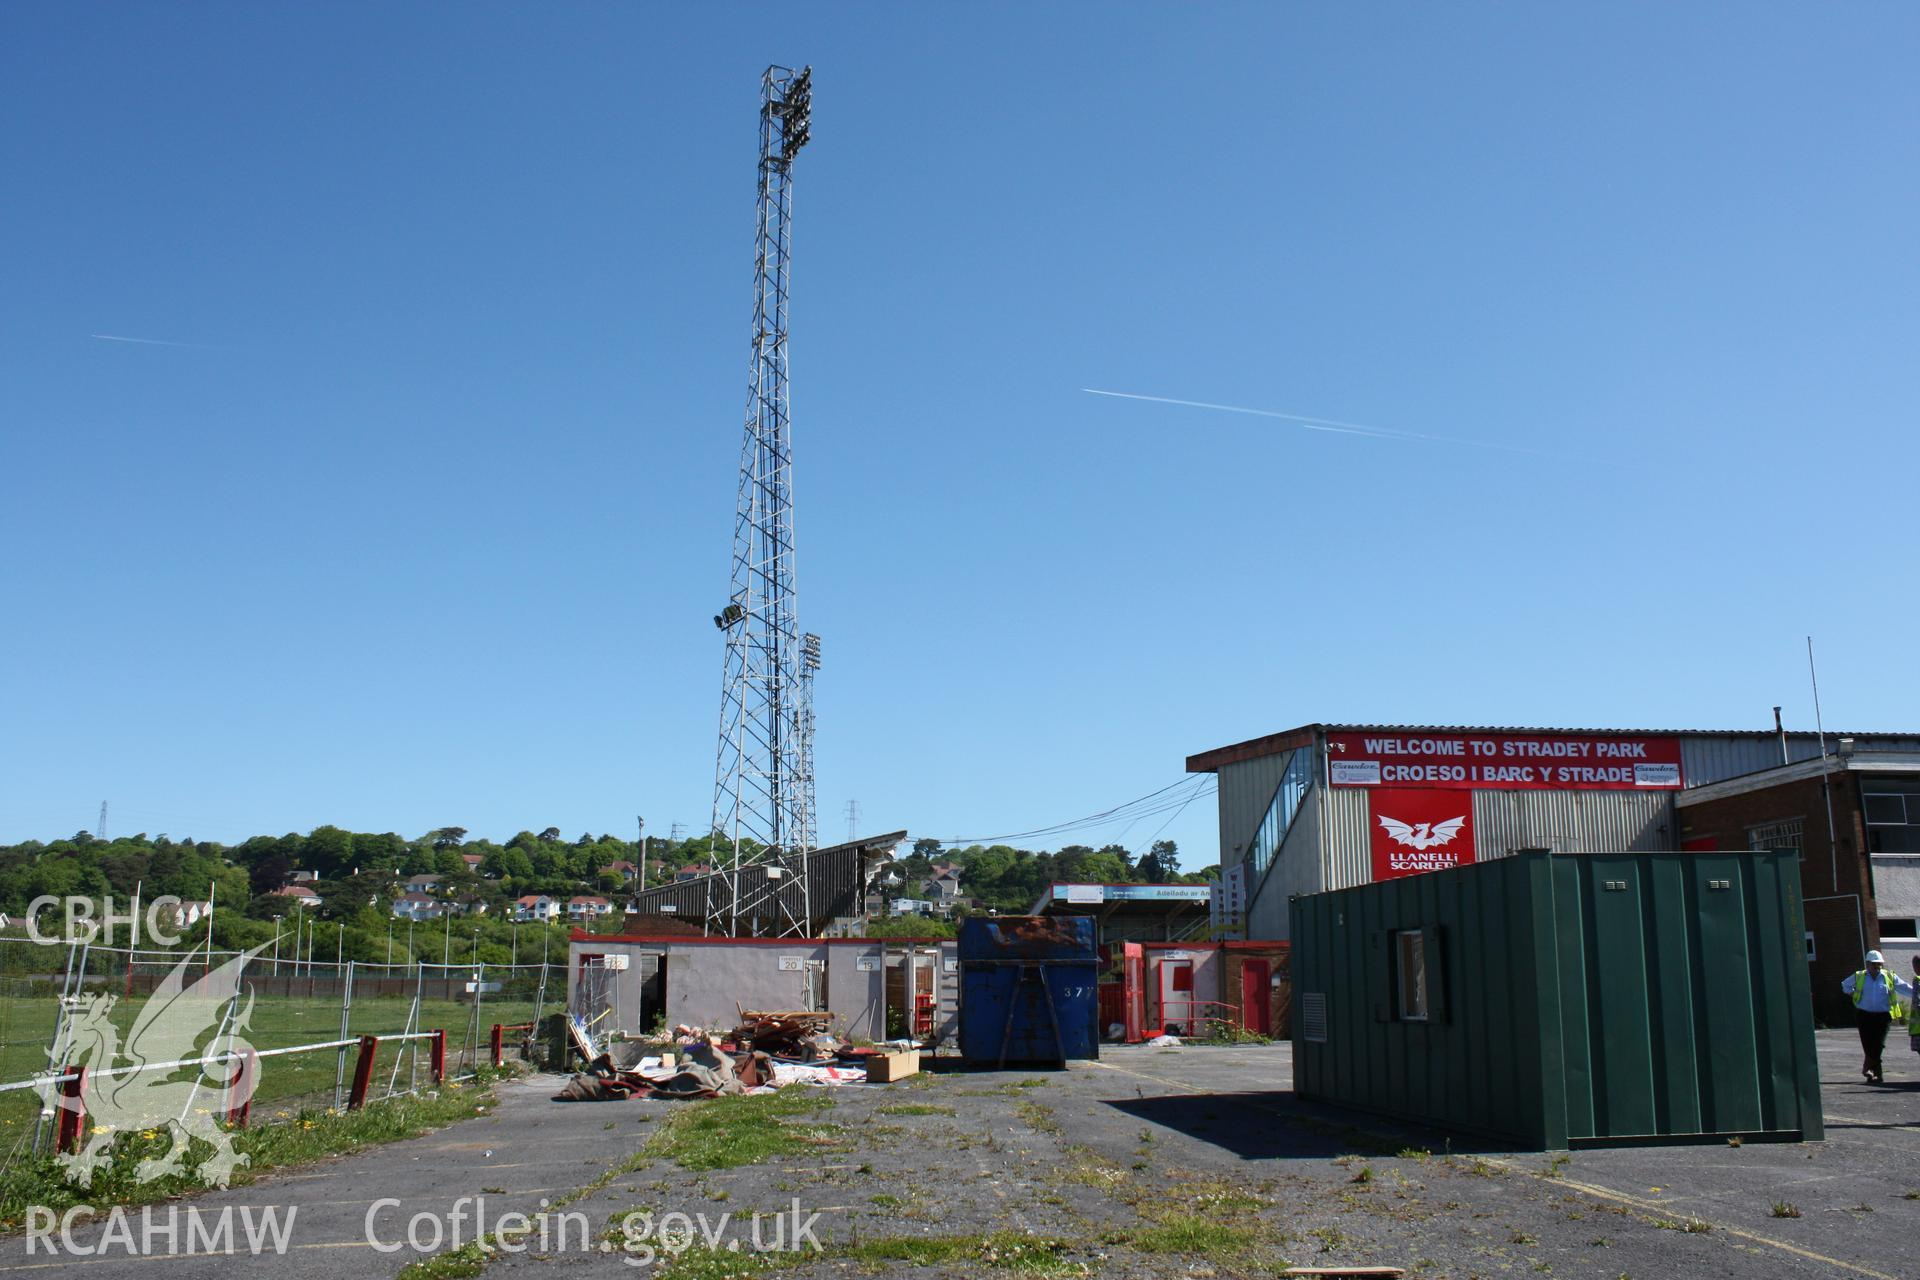 South-west corner of stadium, flood light and turnstiles 18-22.